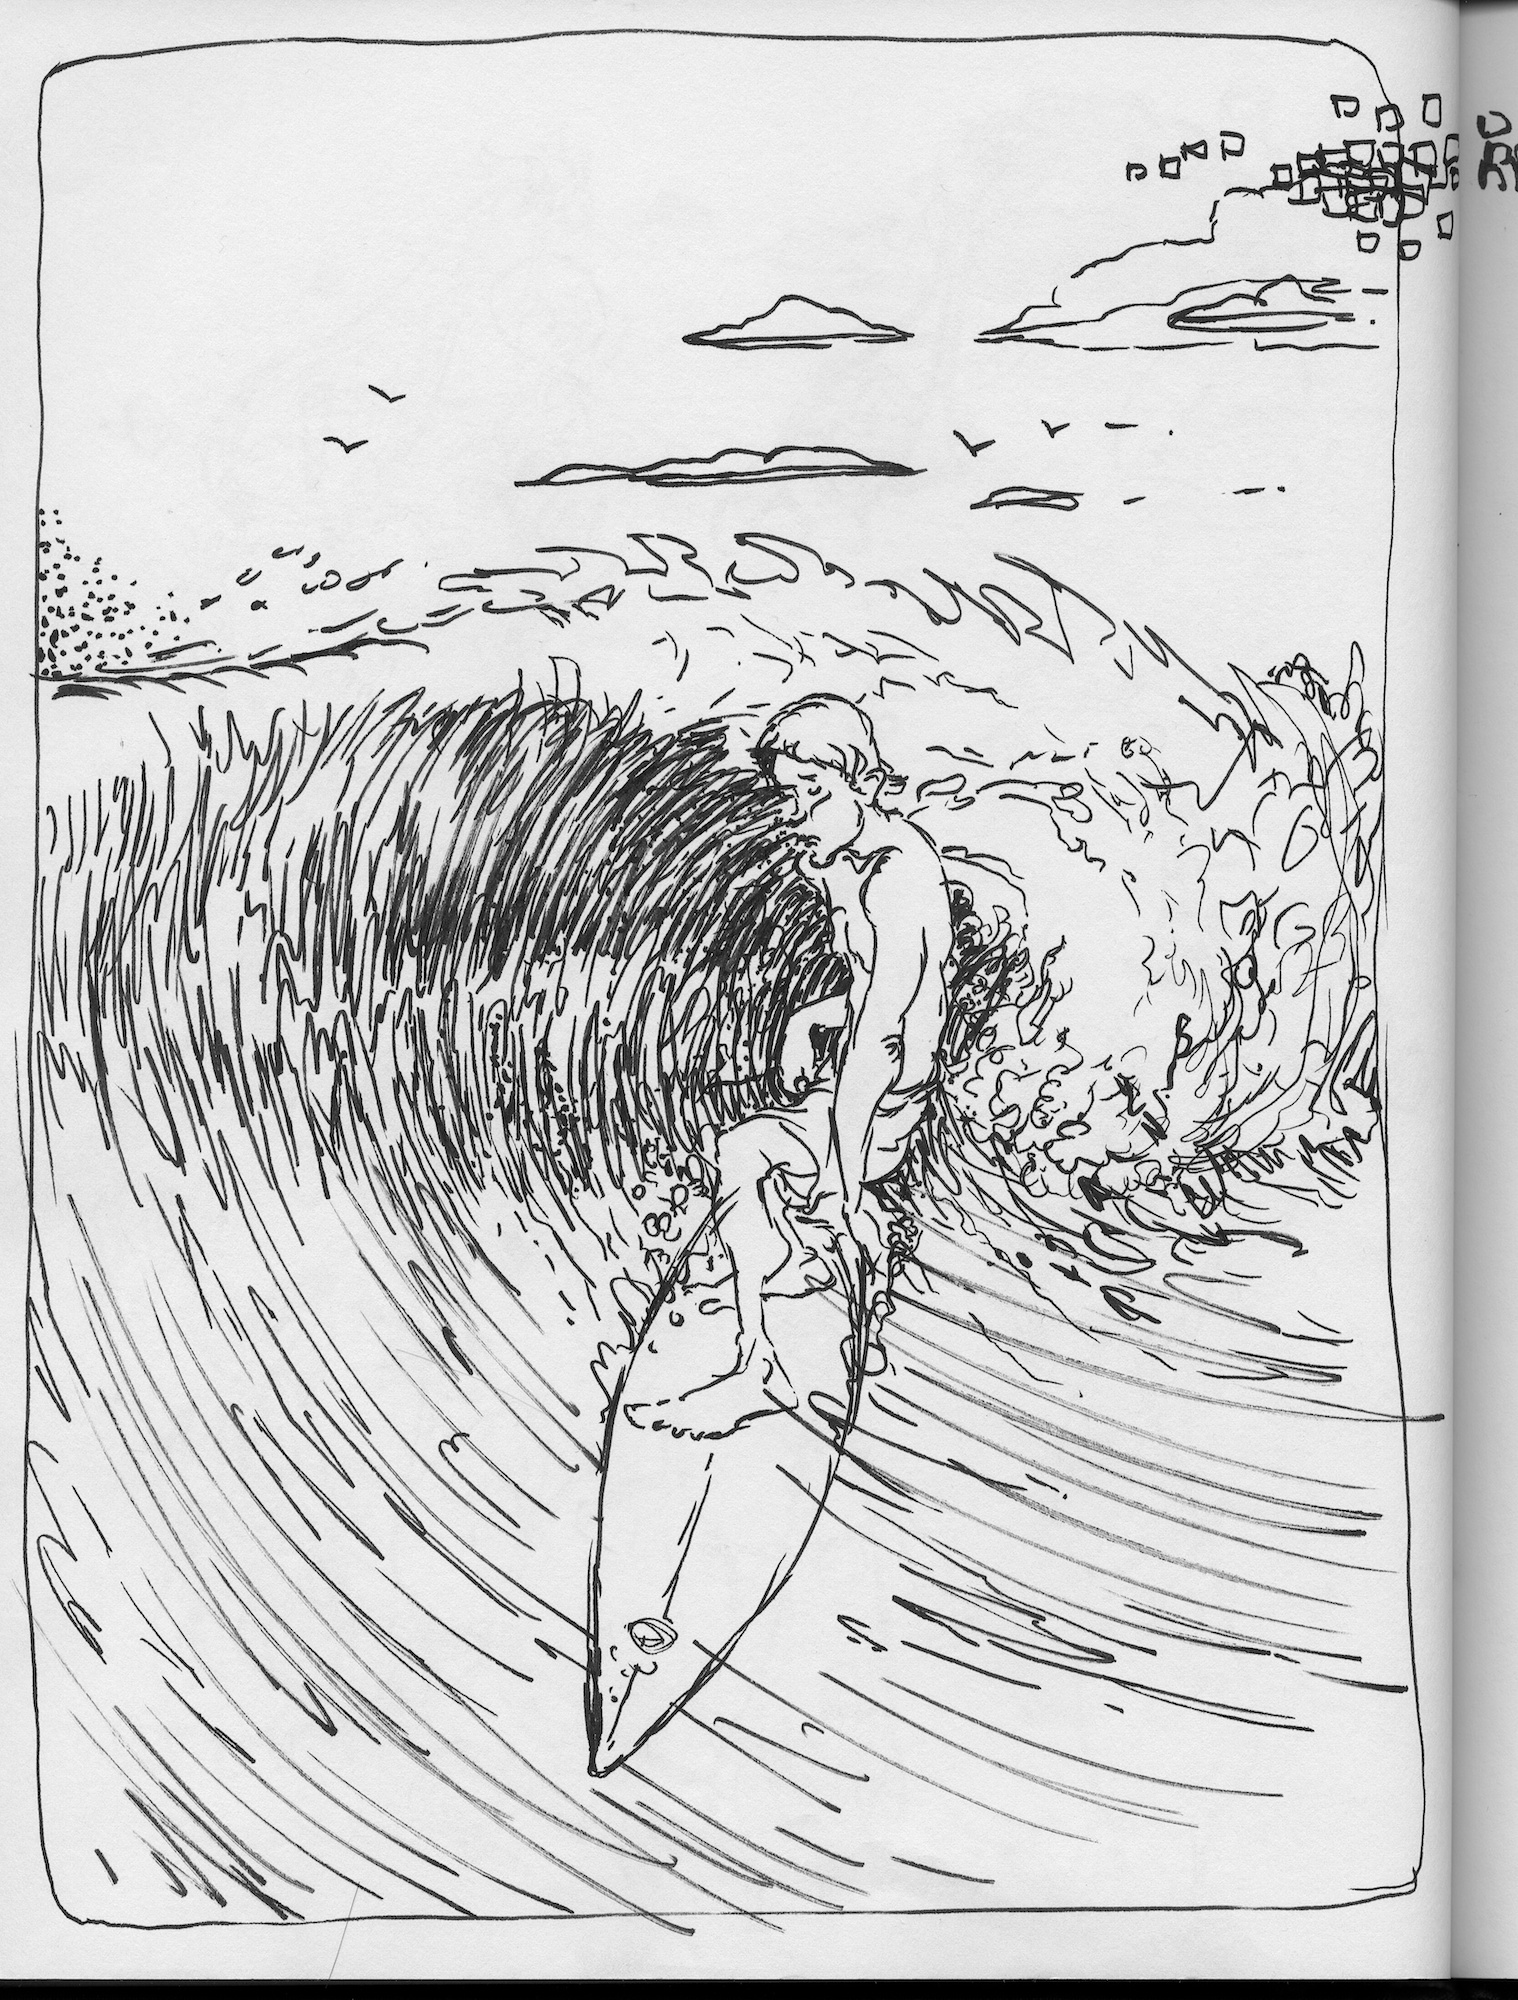 inky wave drawing